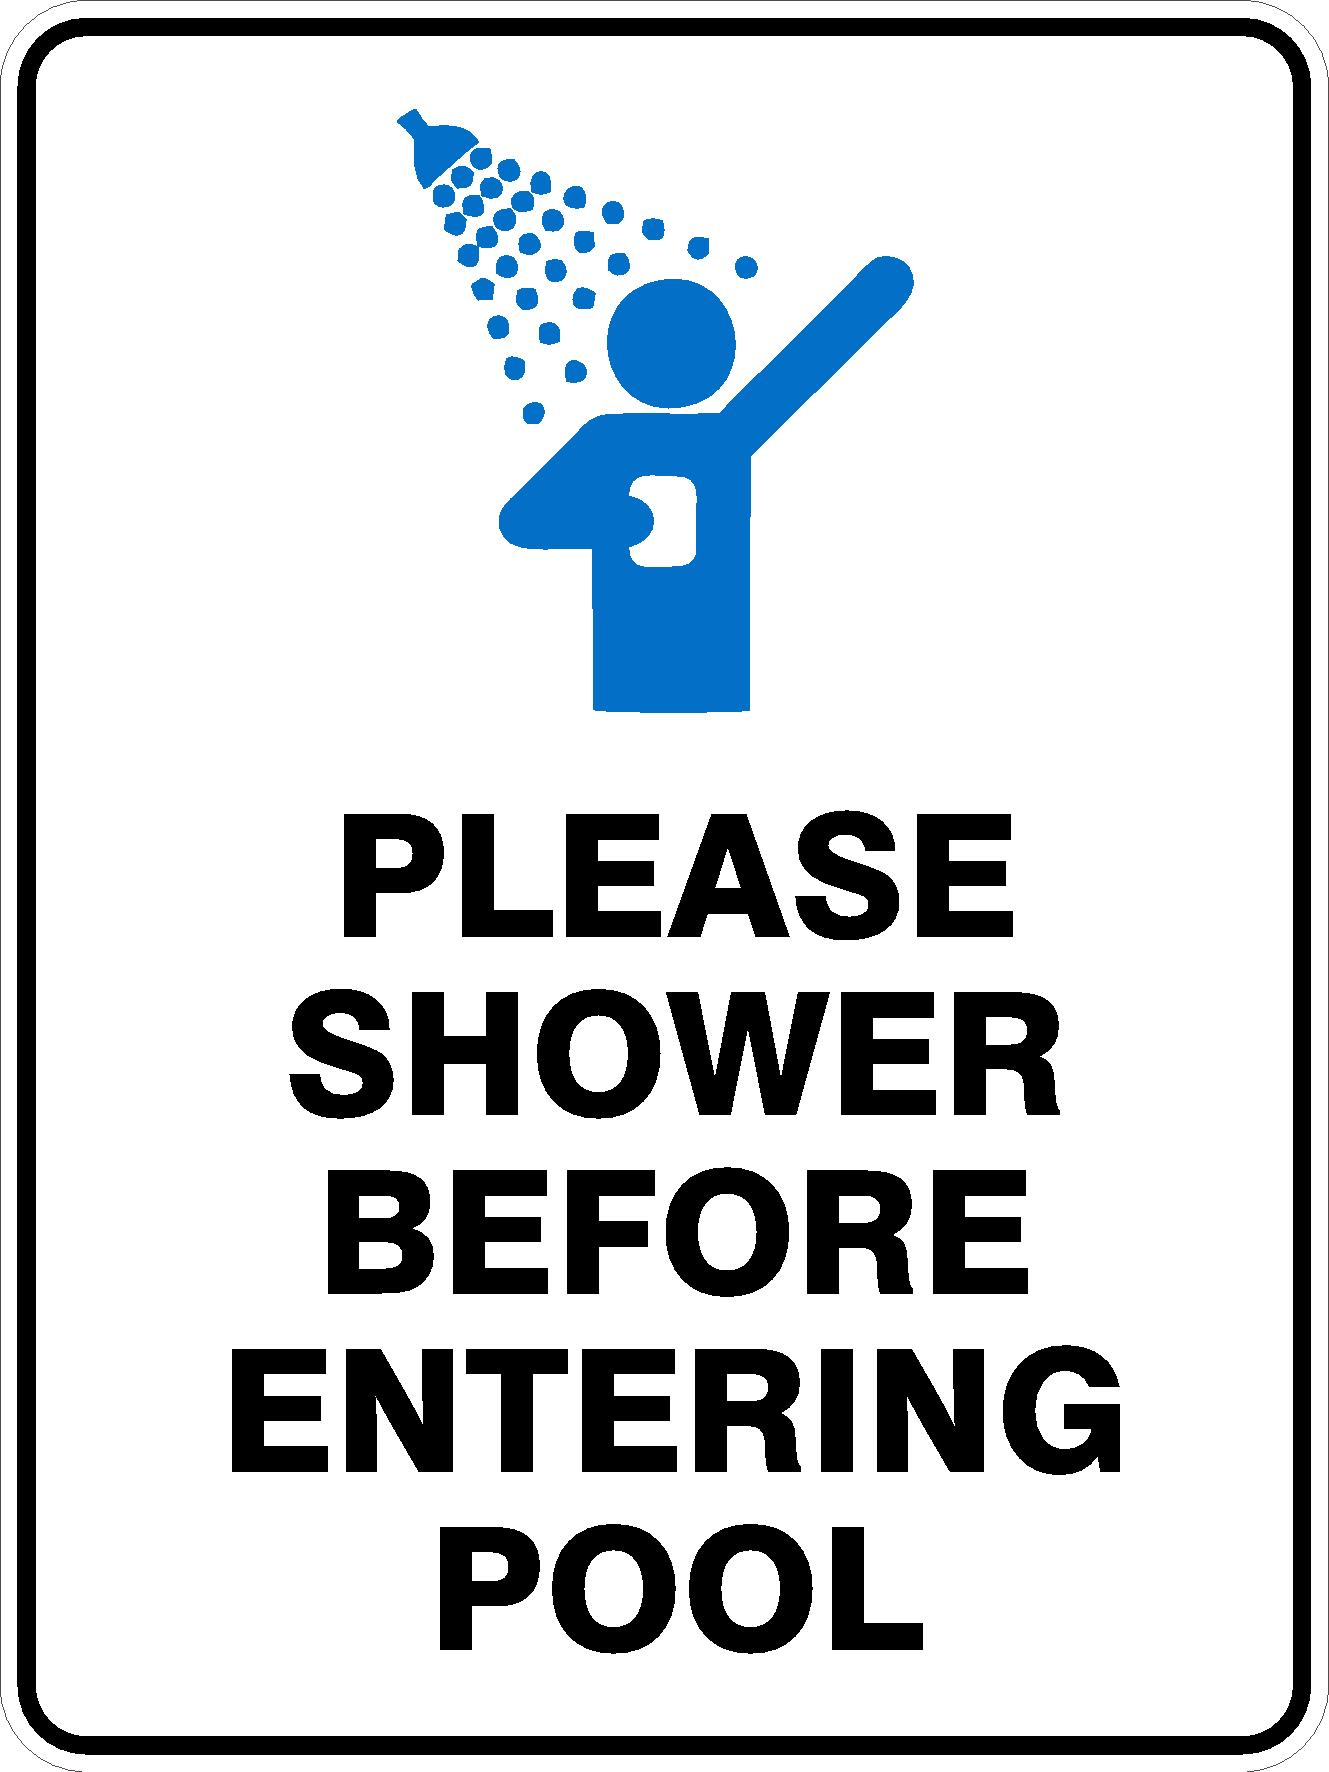 Pool Safety Signs PLEASE SHOWER BEFORE ENTERING POOL